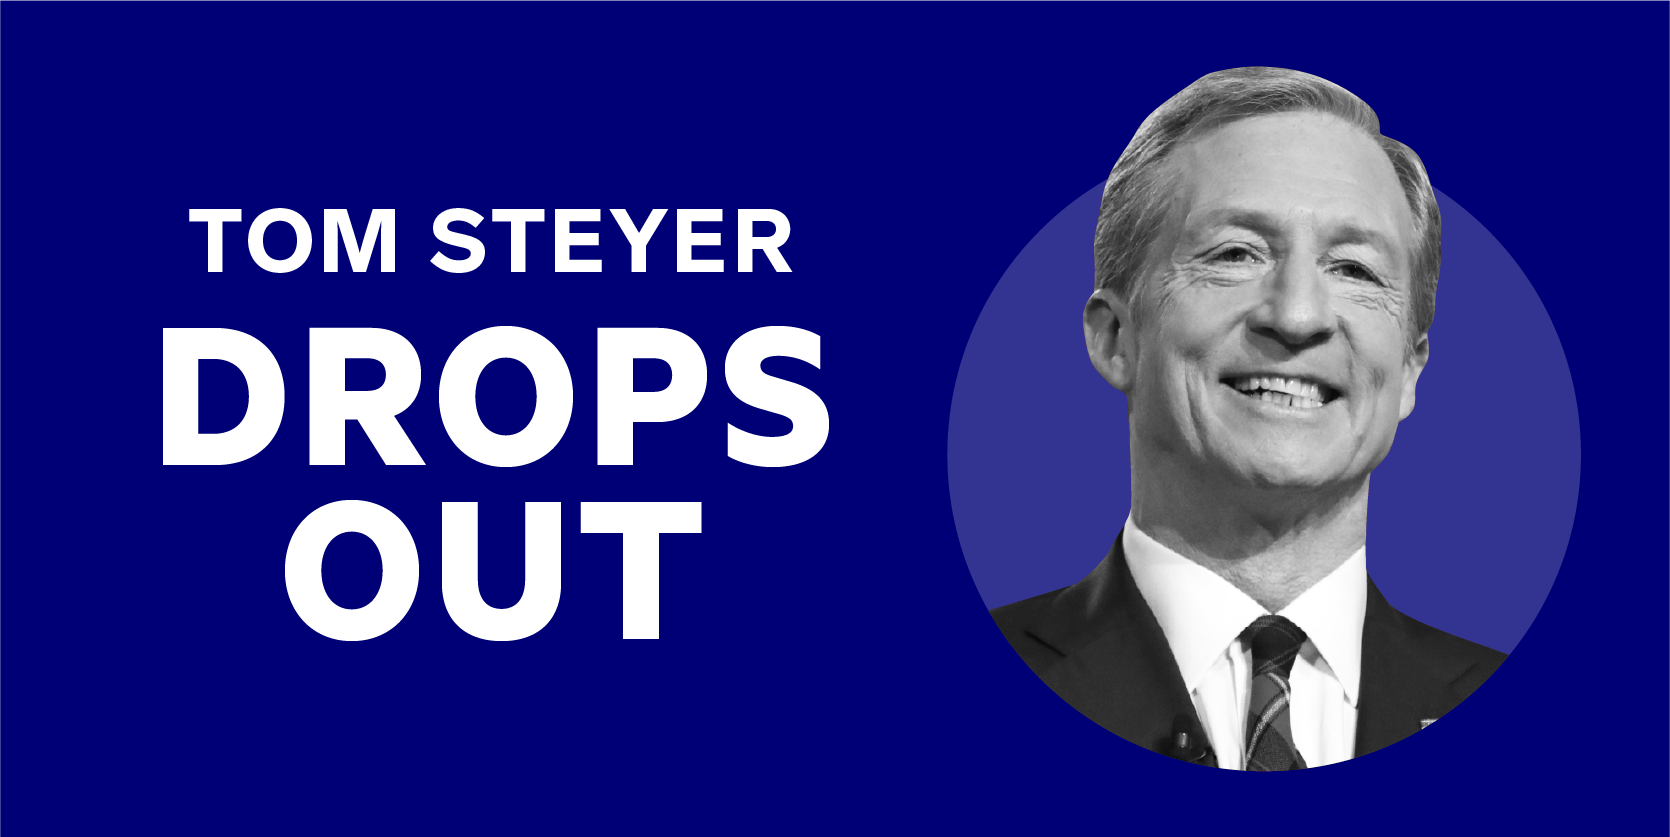 Tom Steyer drops out of the 2020 presidential race